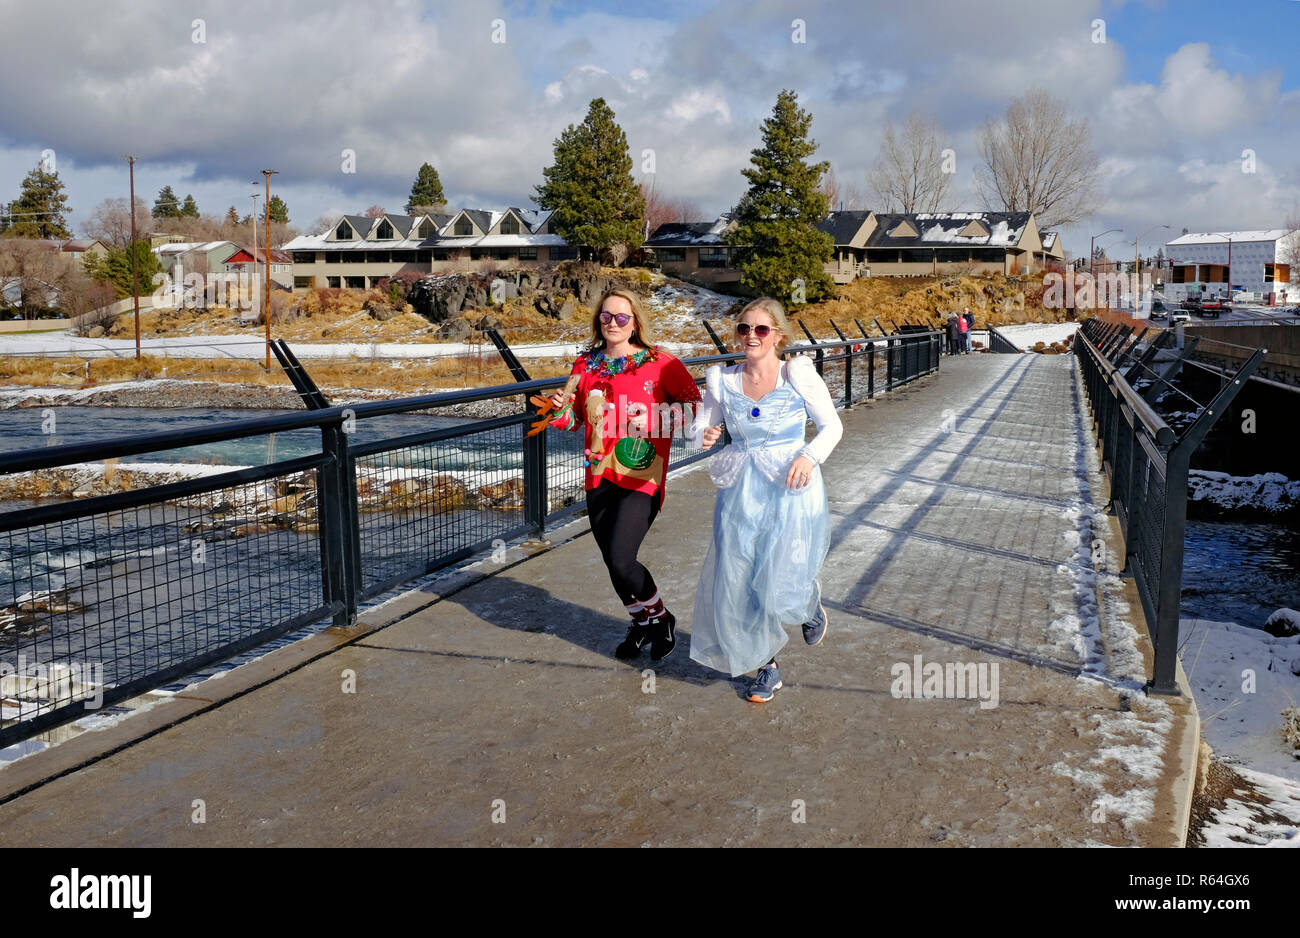 Runners and walkers in costume take part in an annual charity event that supports the Arthritis Foundation called the Jingle Bell Run, held in Bend, O - Stock Image